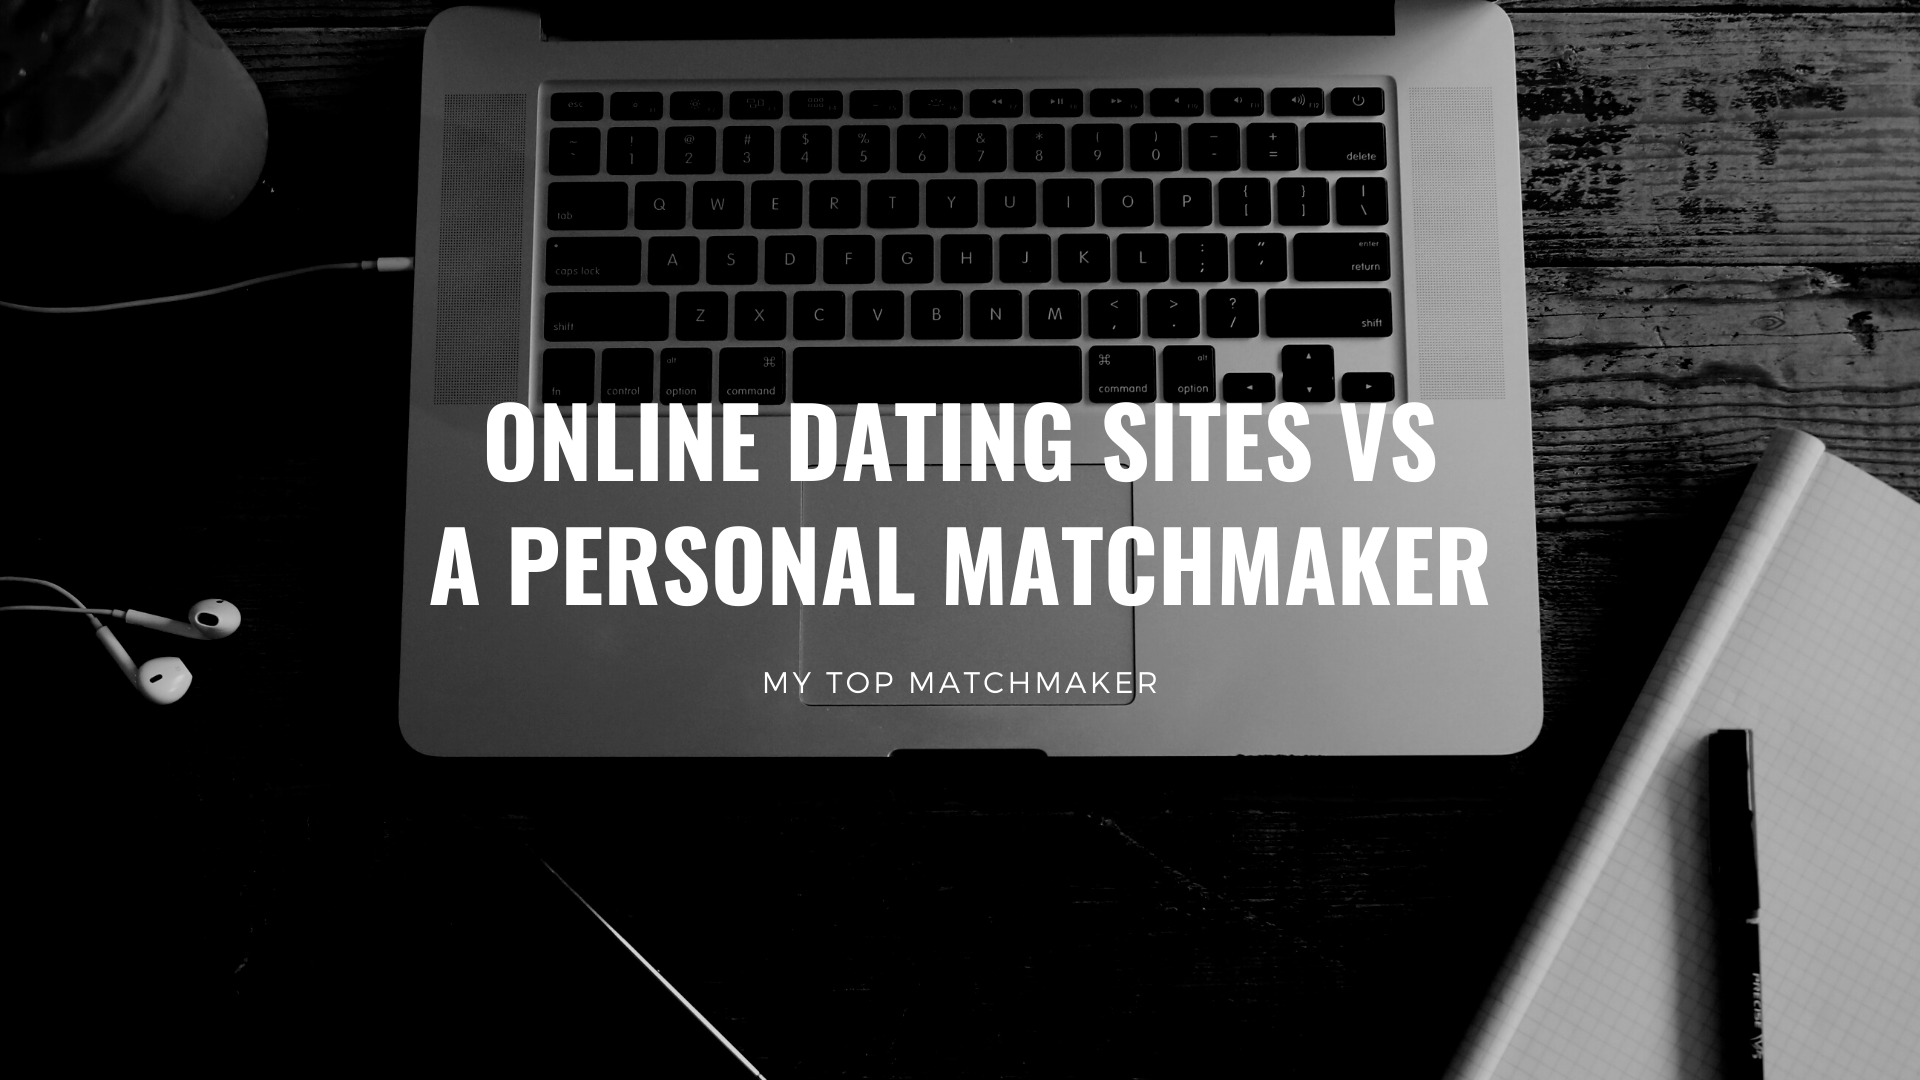 online dating sites vs a personal matchmaker